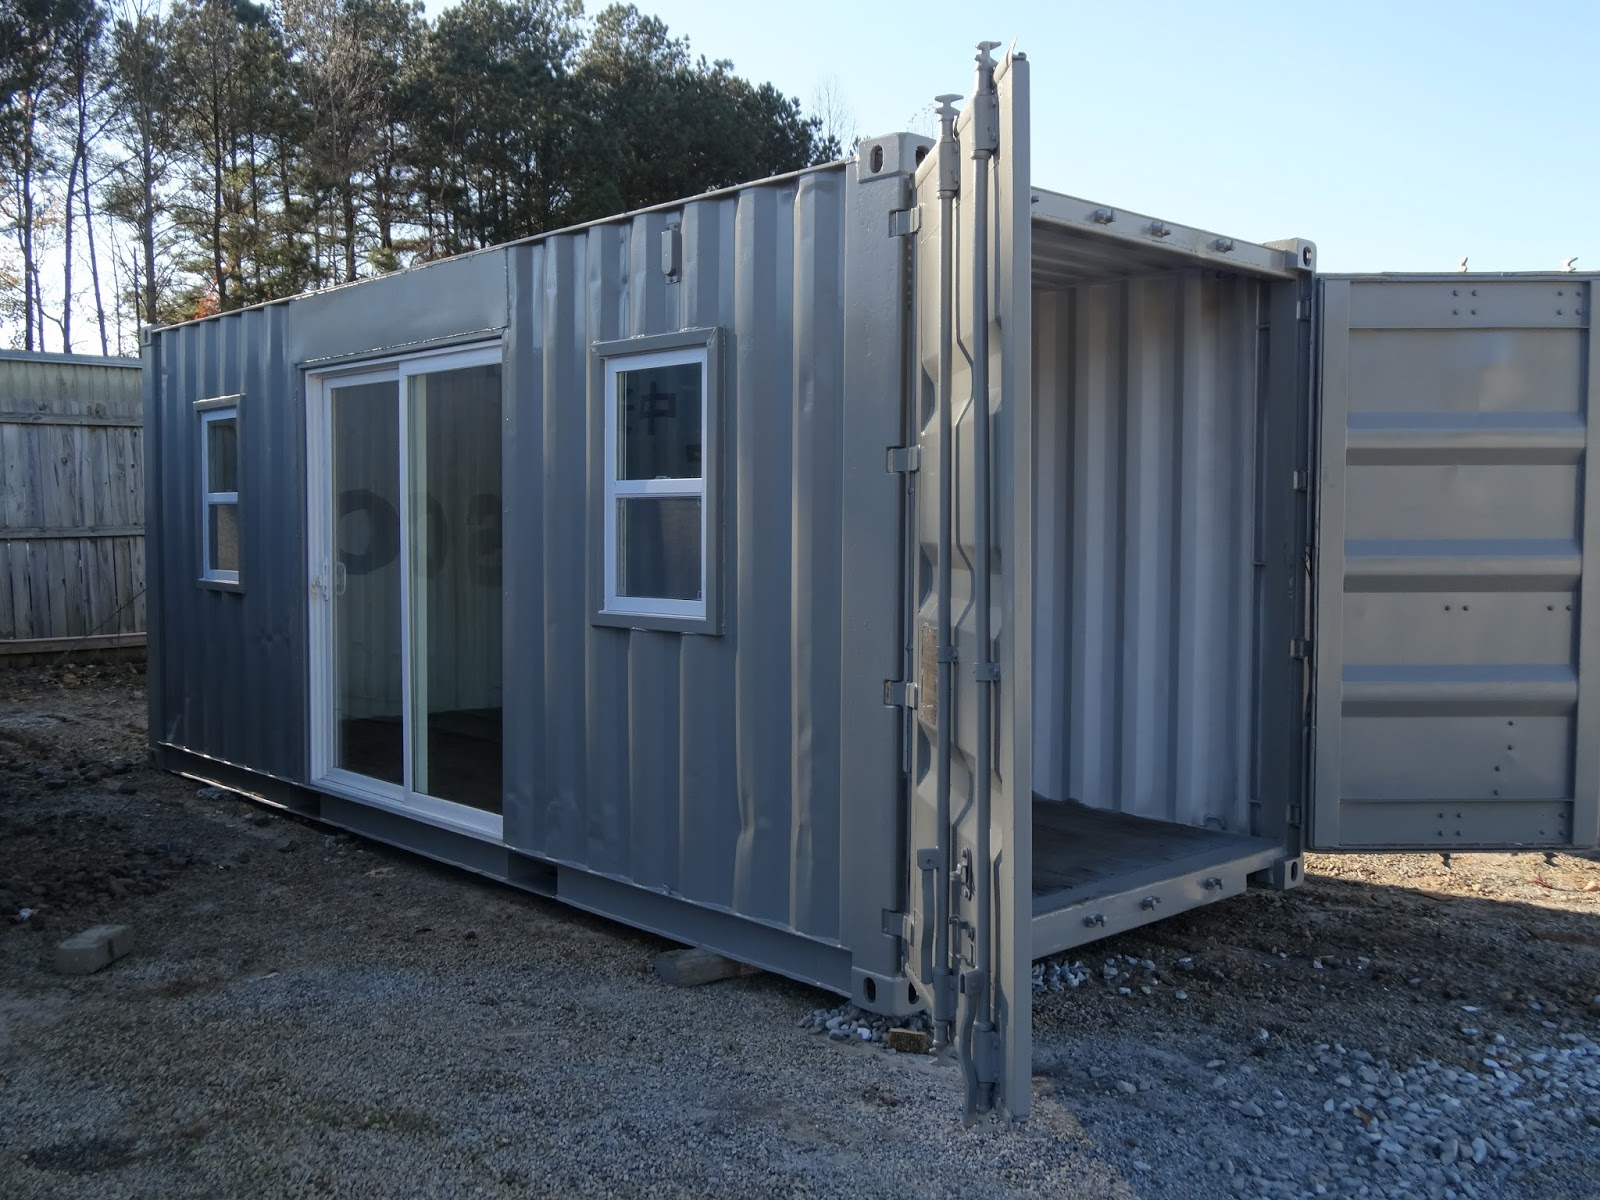 Storage Containers Atlanta Listitdallas